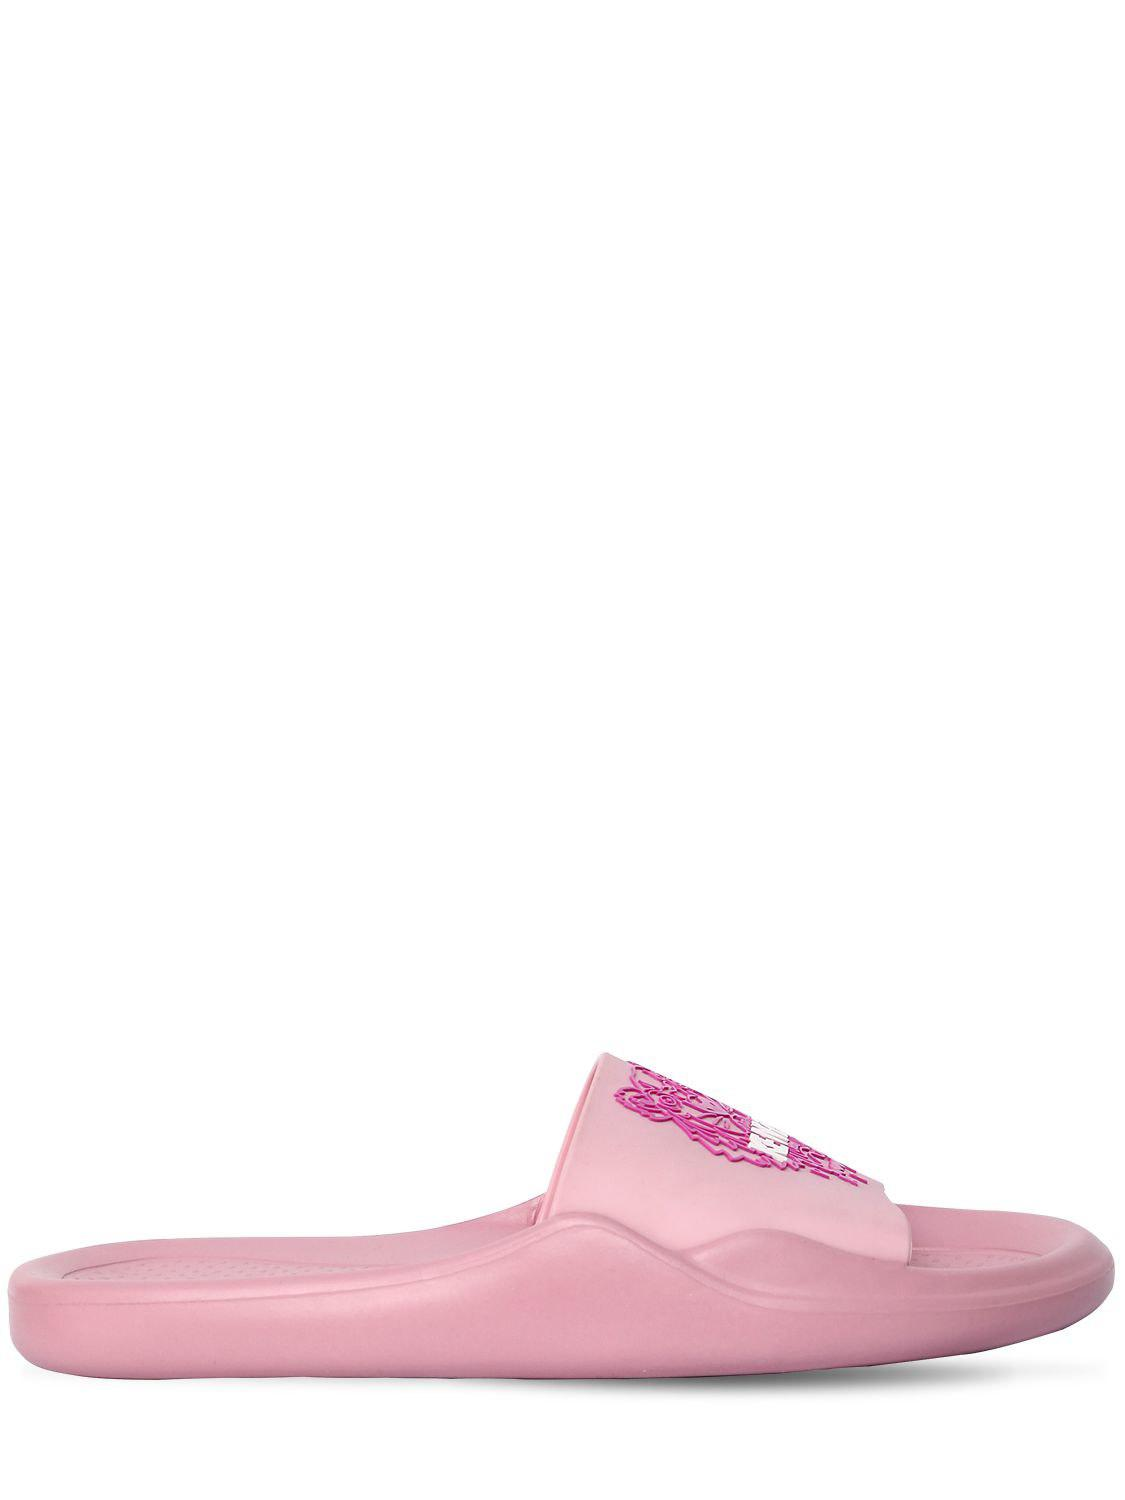 fecfc822304f Lyst - Kenzo 20mm Tiger Pool Slide Sandals in Pink